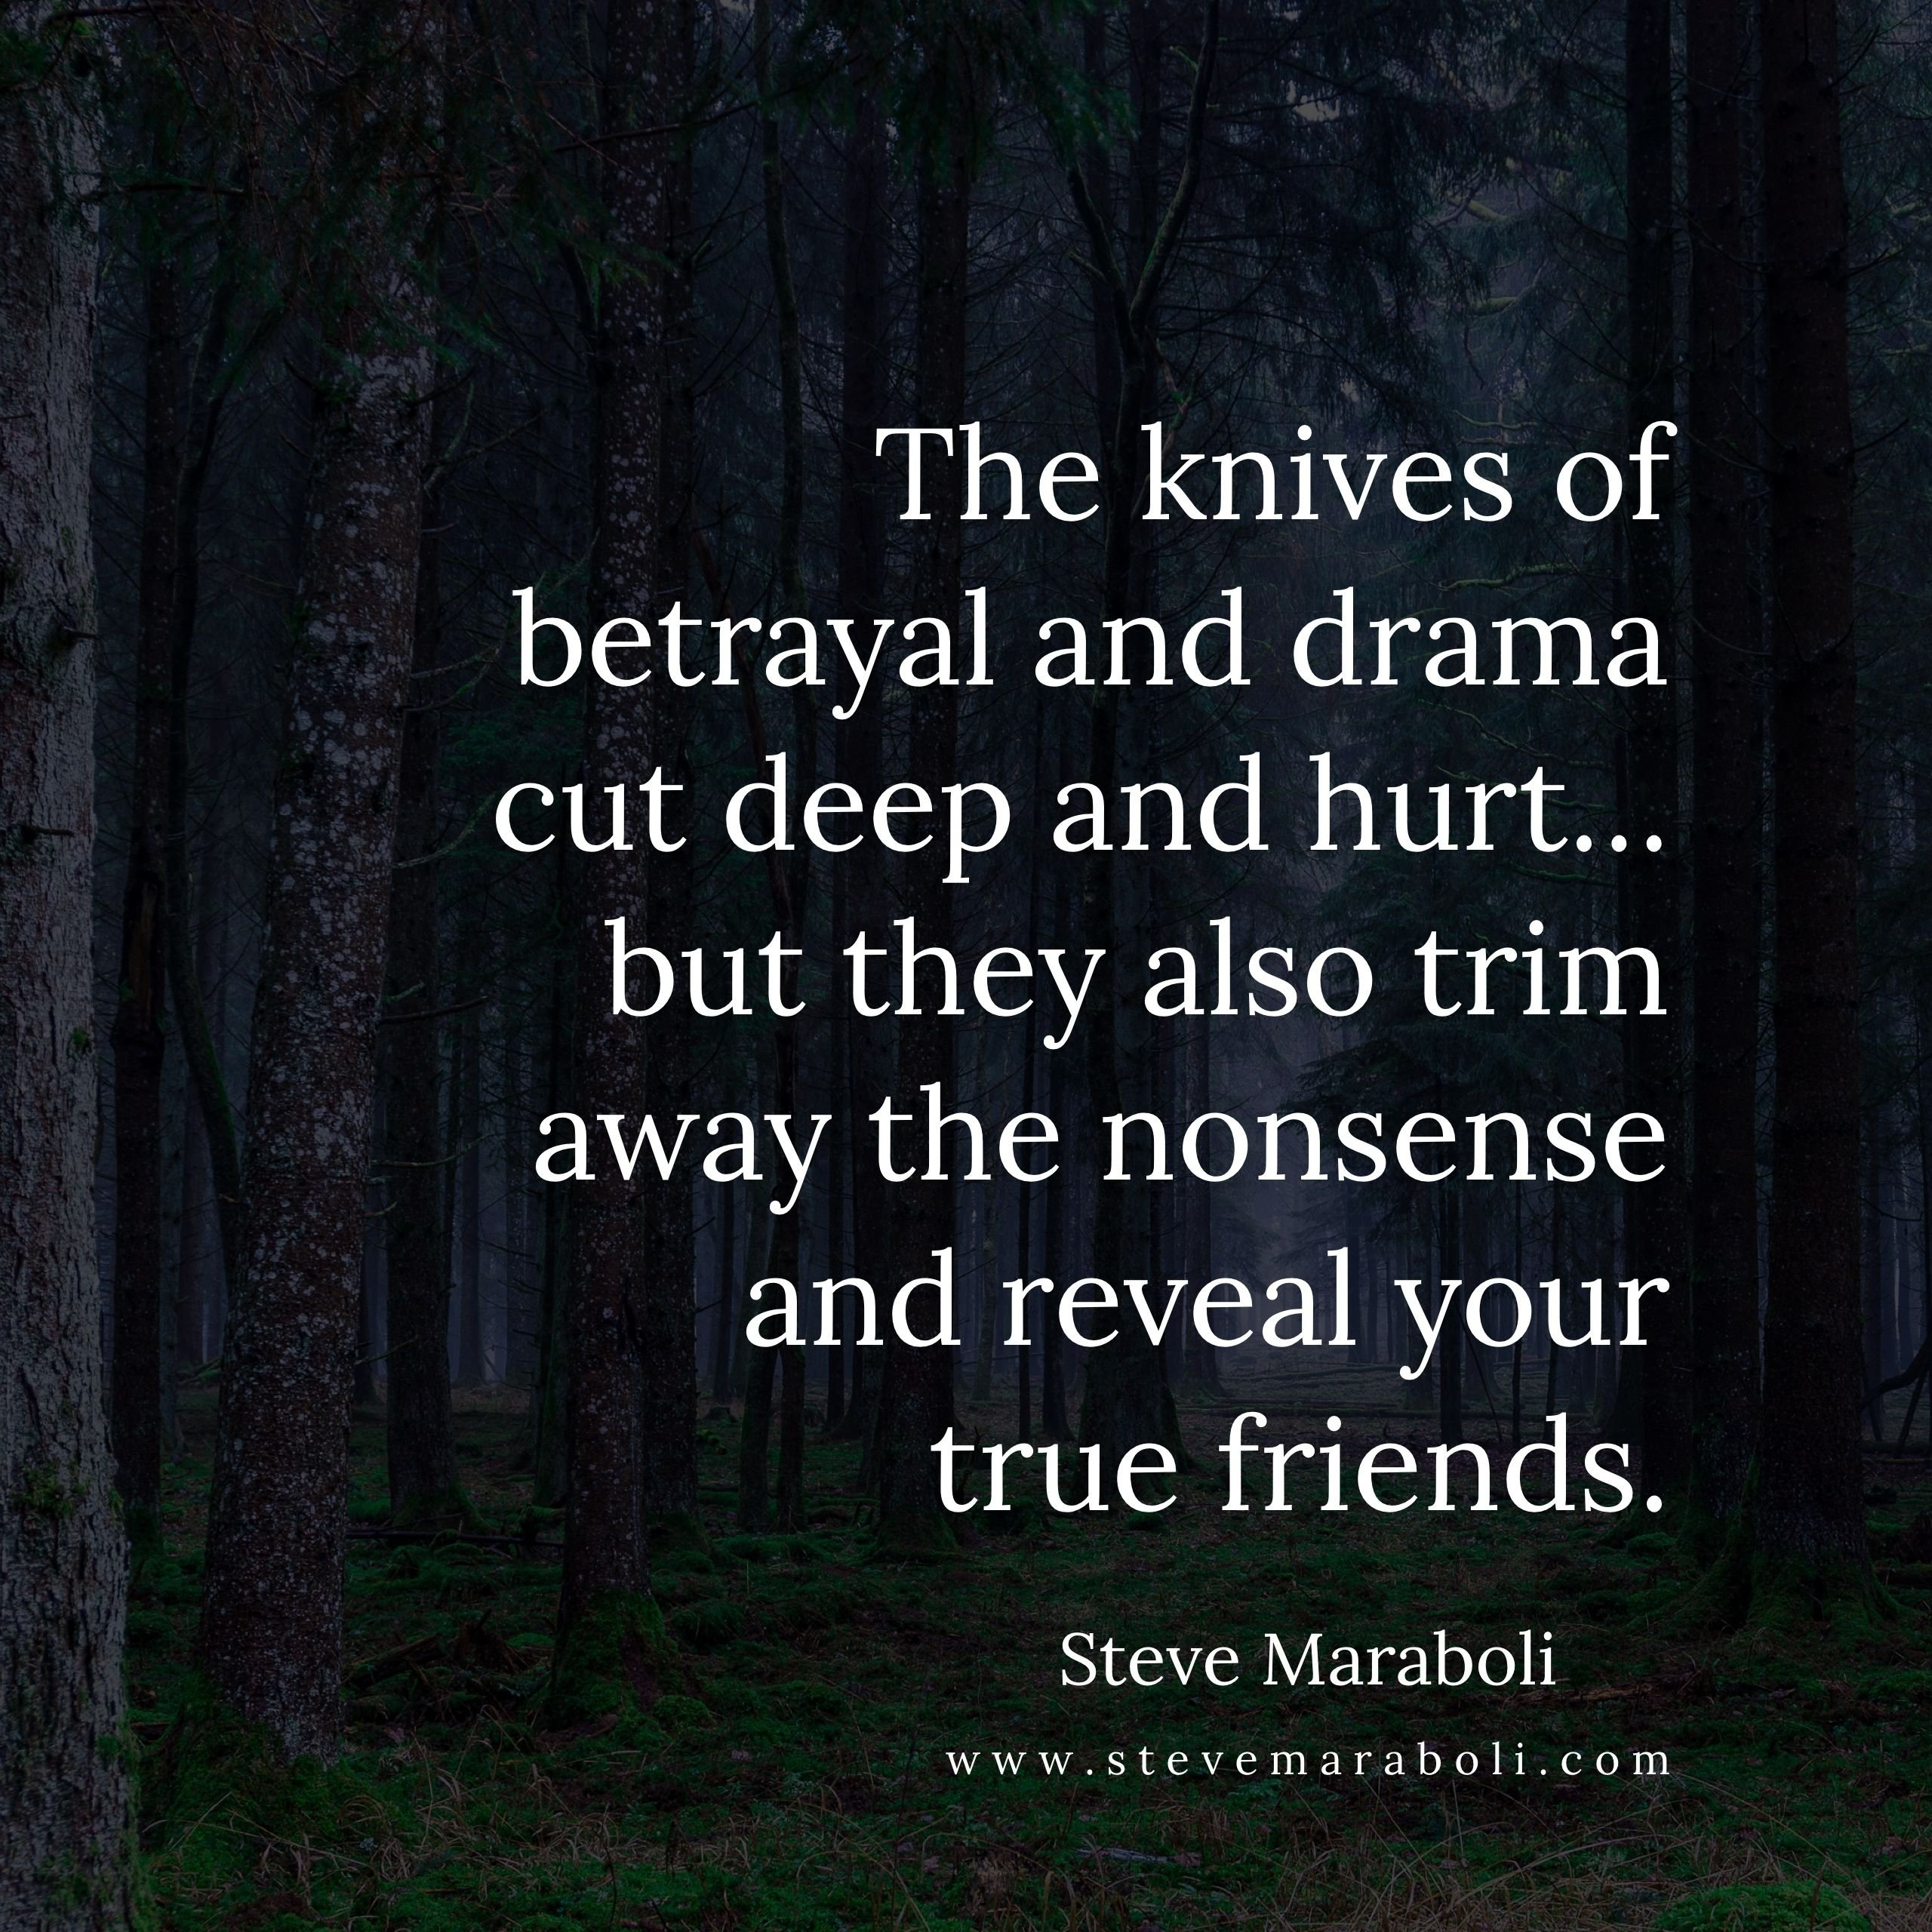 10 Pretty Revenge Ideas On Backstabbing Friends the knives of betrayal and drama cut deep and hurt but they also 2020